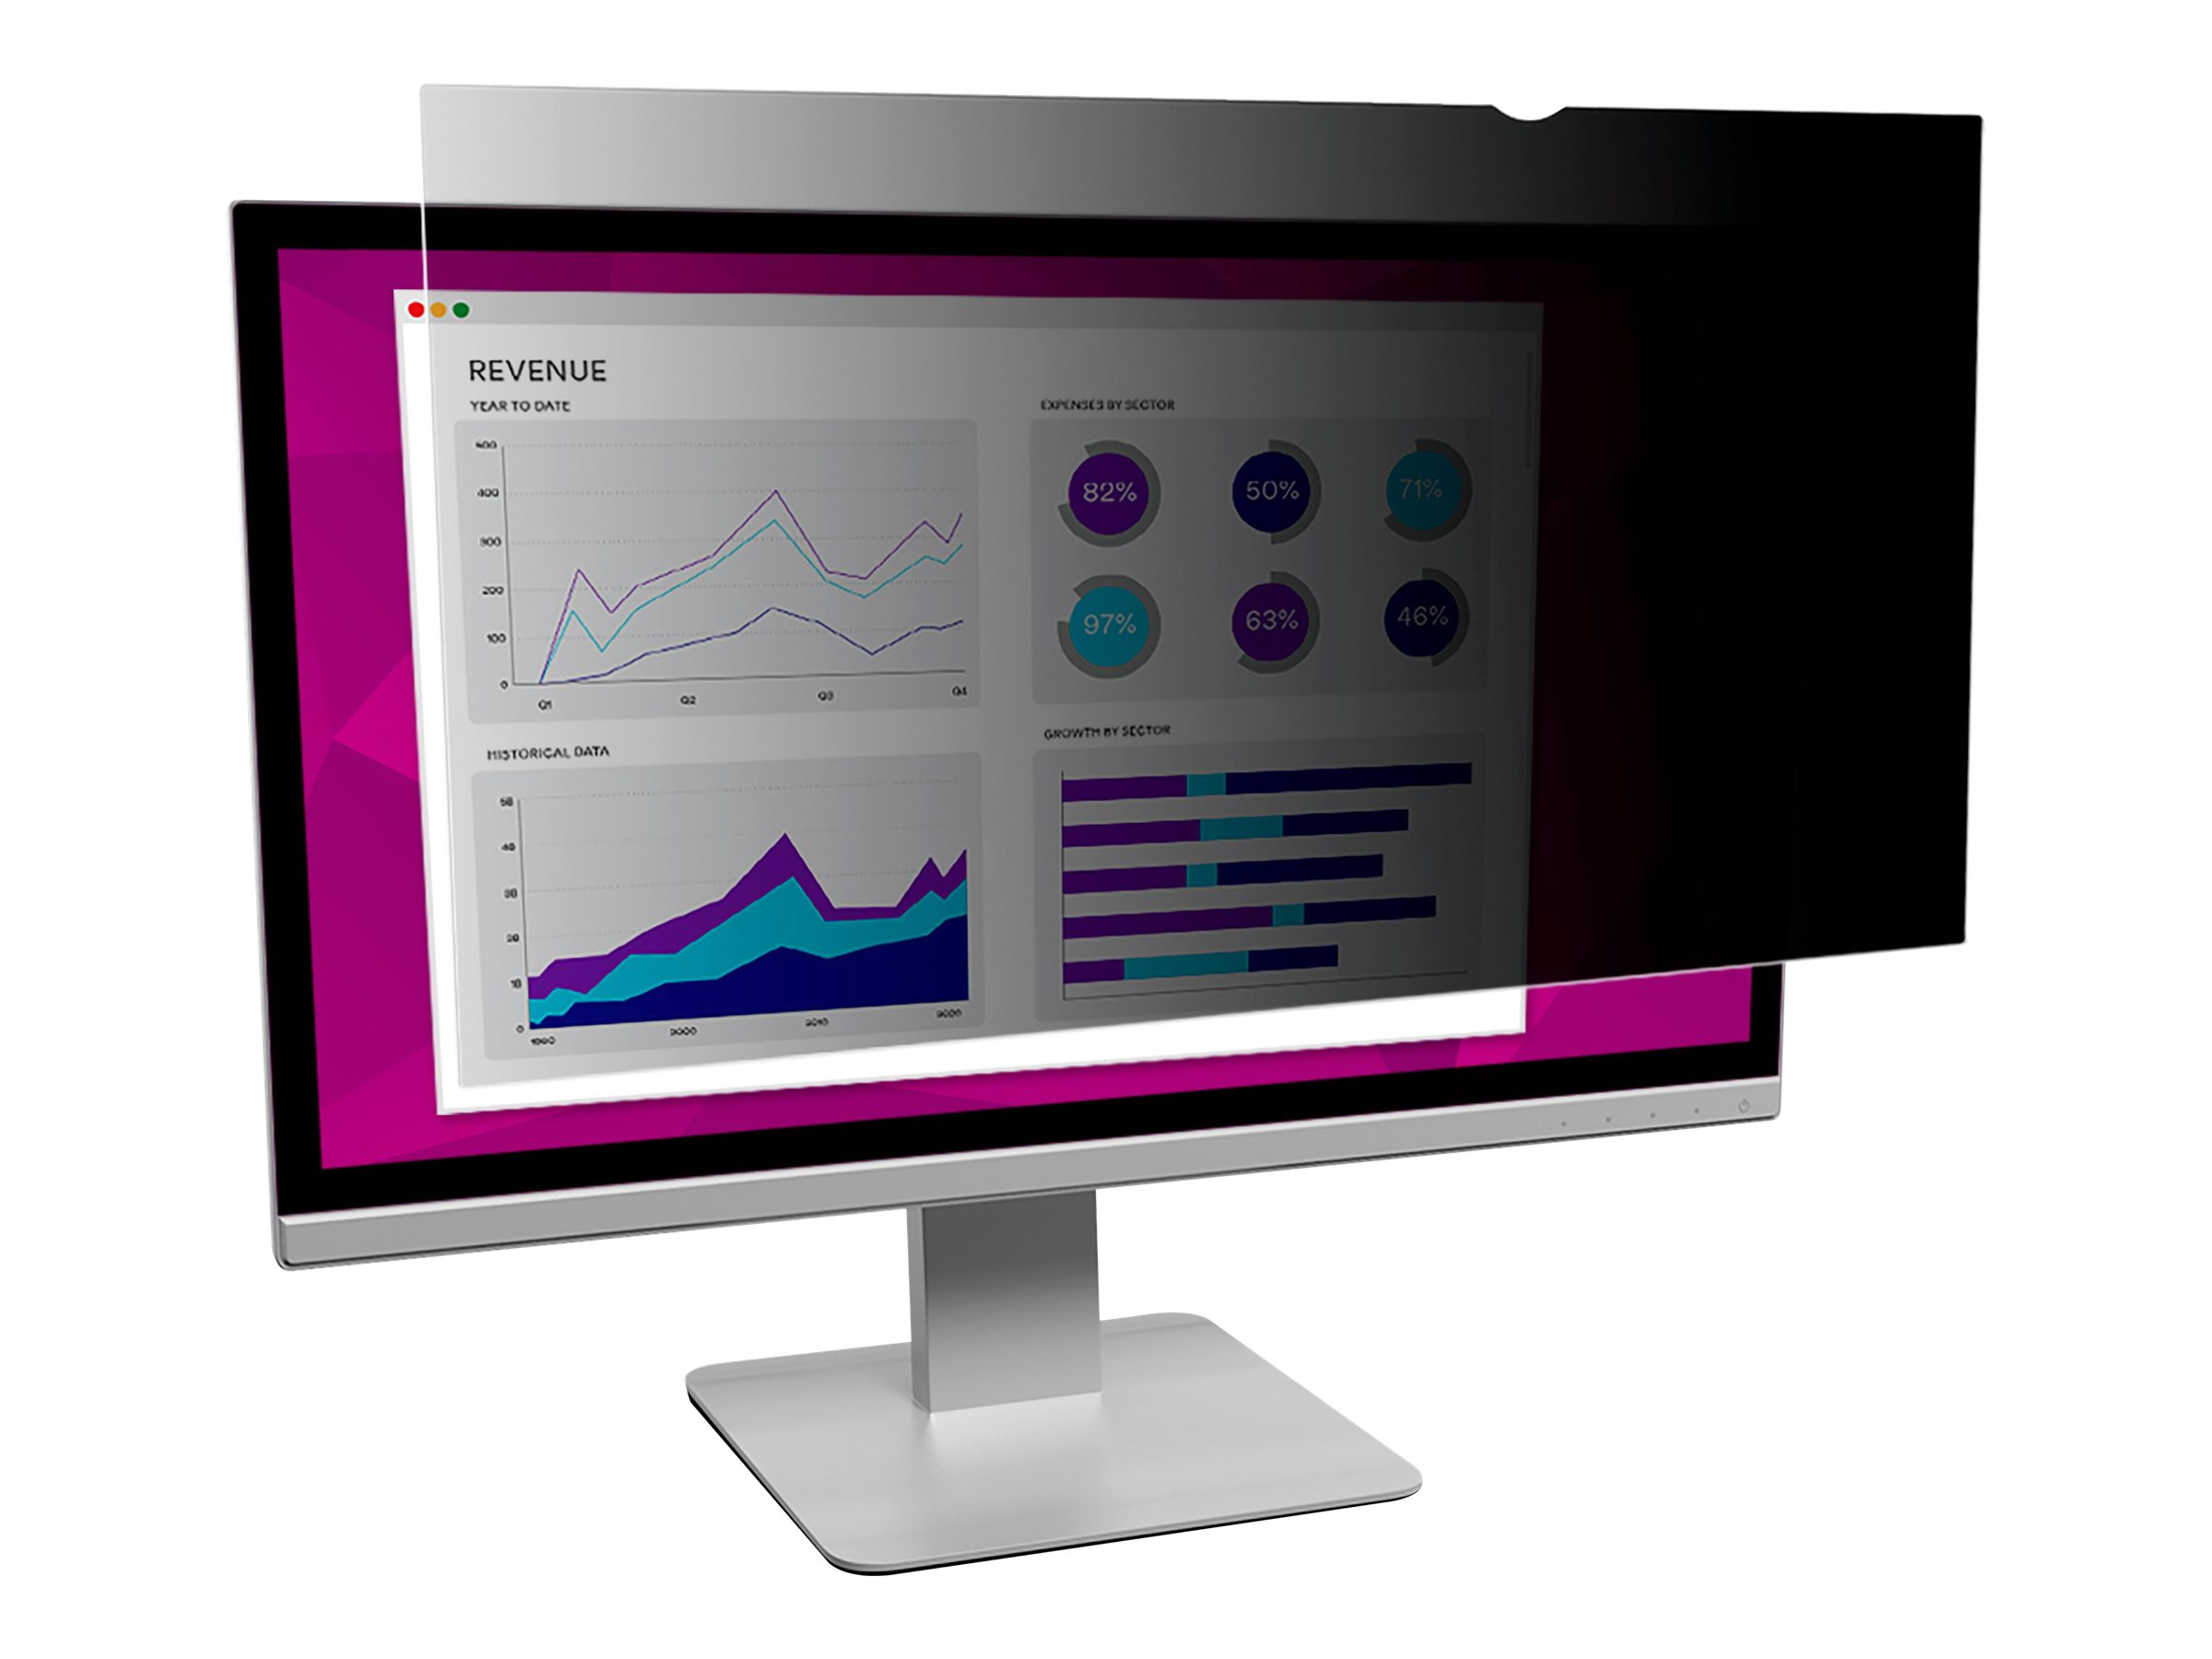 """3M High Clarity Privacy Filter for 27"""" Widescreen Monitor - display privacy filter - 27"""" wide"""